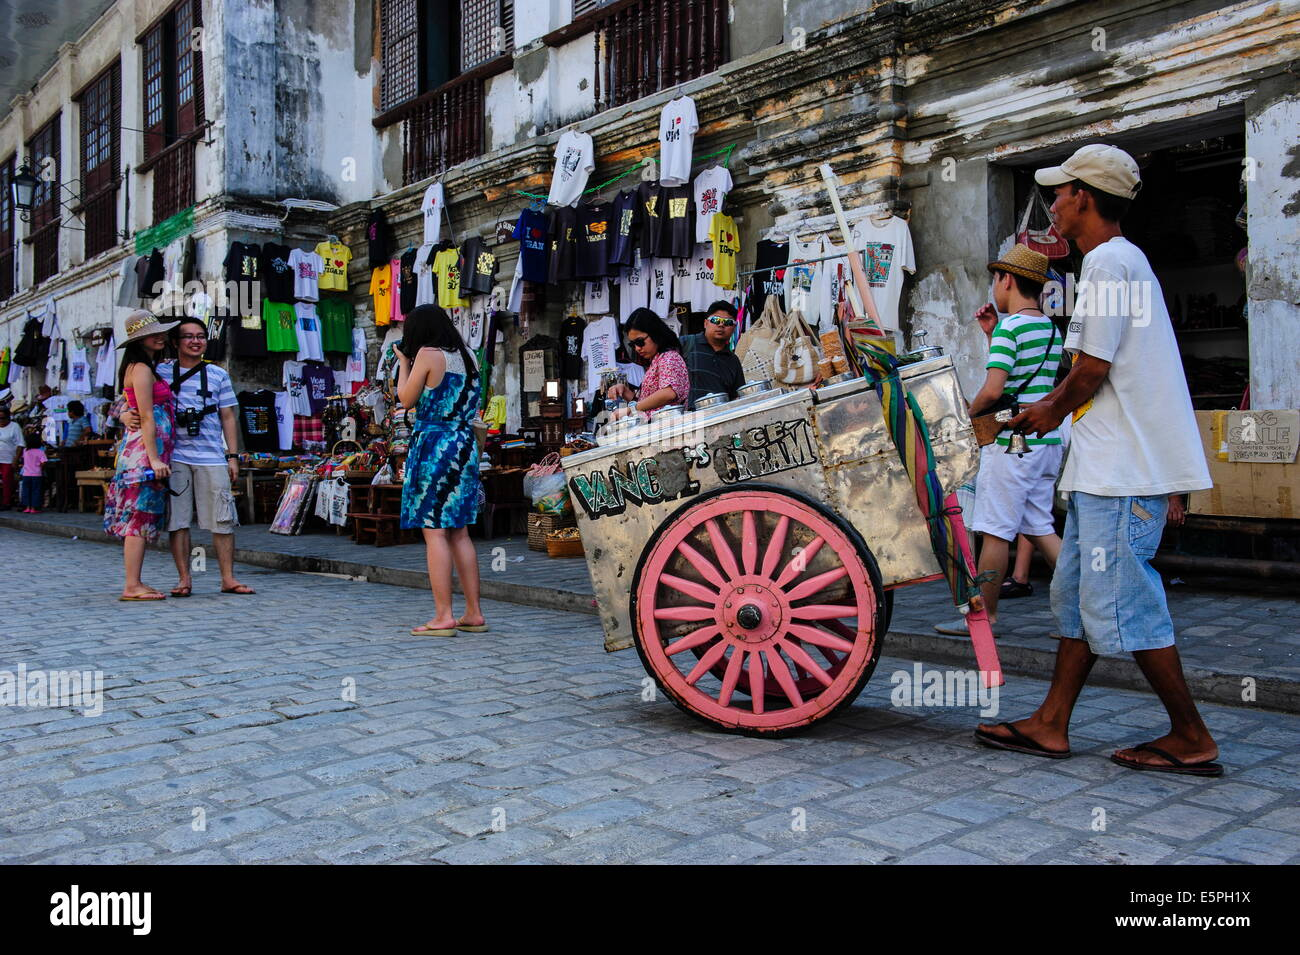 Vigan, UNESCO World Heritage Site, Northern Luzon, Philippines, Southeast Asia, Asia - Stock Image